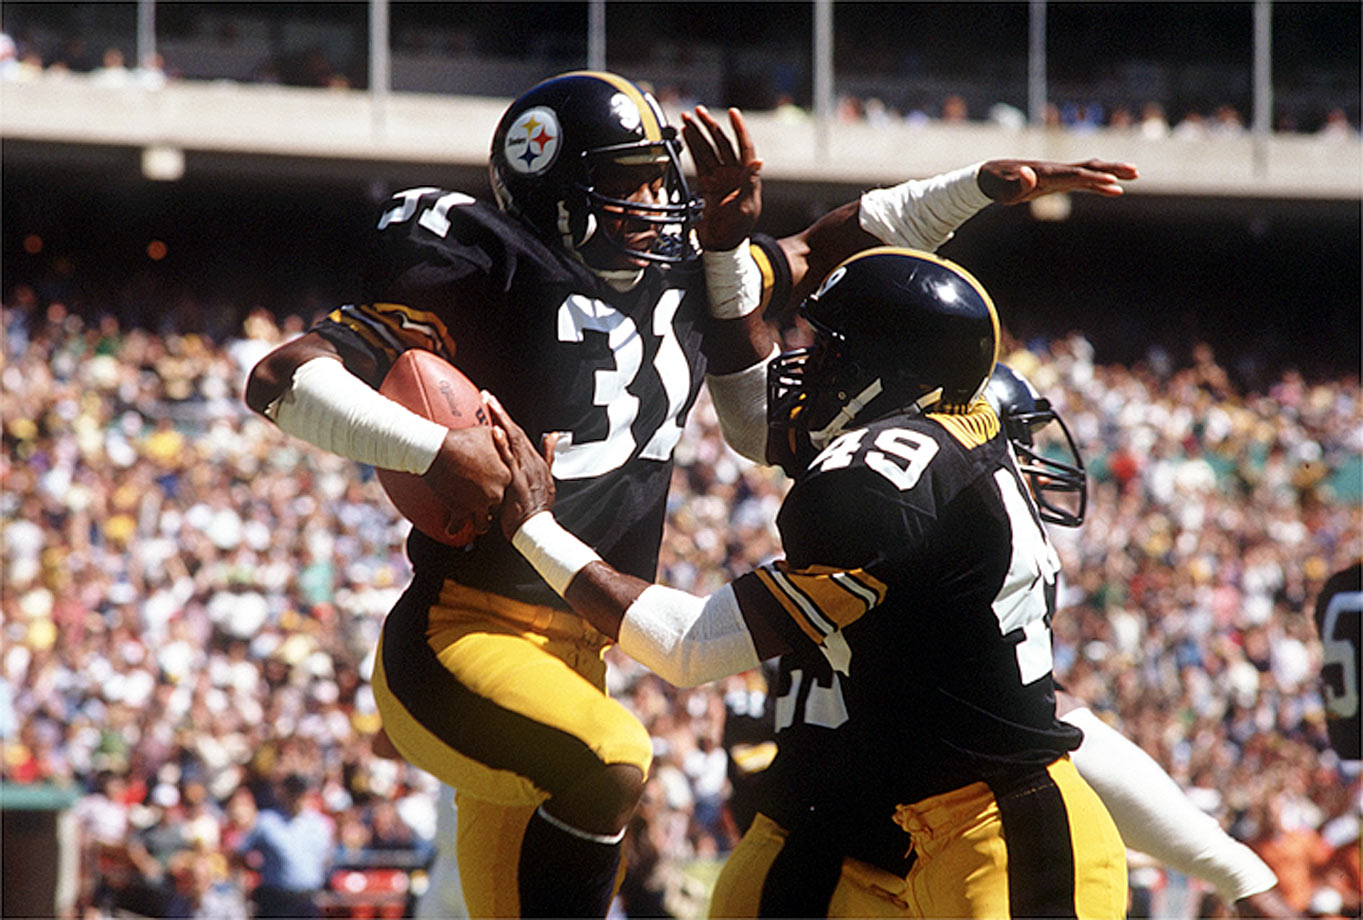 Despite rushing for 10,000 career yards, Jamal Lewis, another No. 31, is not bound for Canton. Shell—a 2002 finalist—does not seem likely to get there either, even with a stronger Hall résumé. As a starter beginning in the second half of Pittsburgh's 1970s dynasty, Shell was the type of rangy, box safety teams still covet.